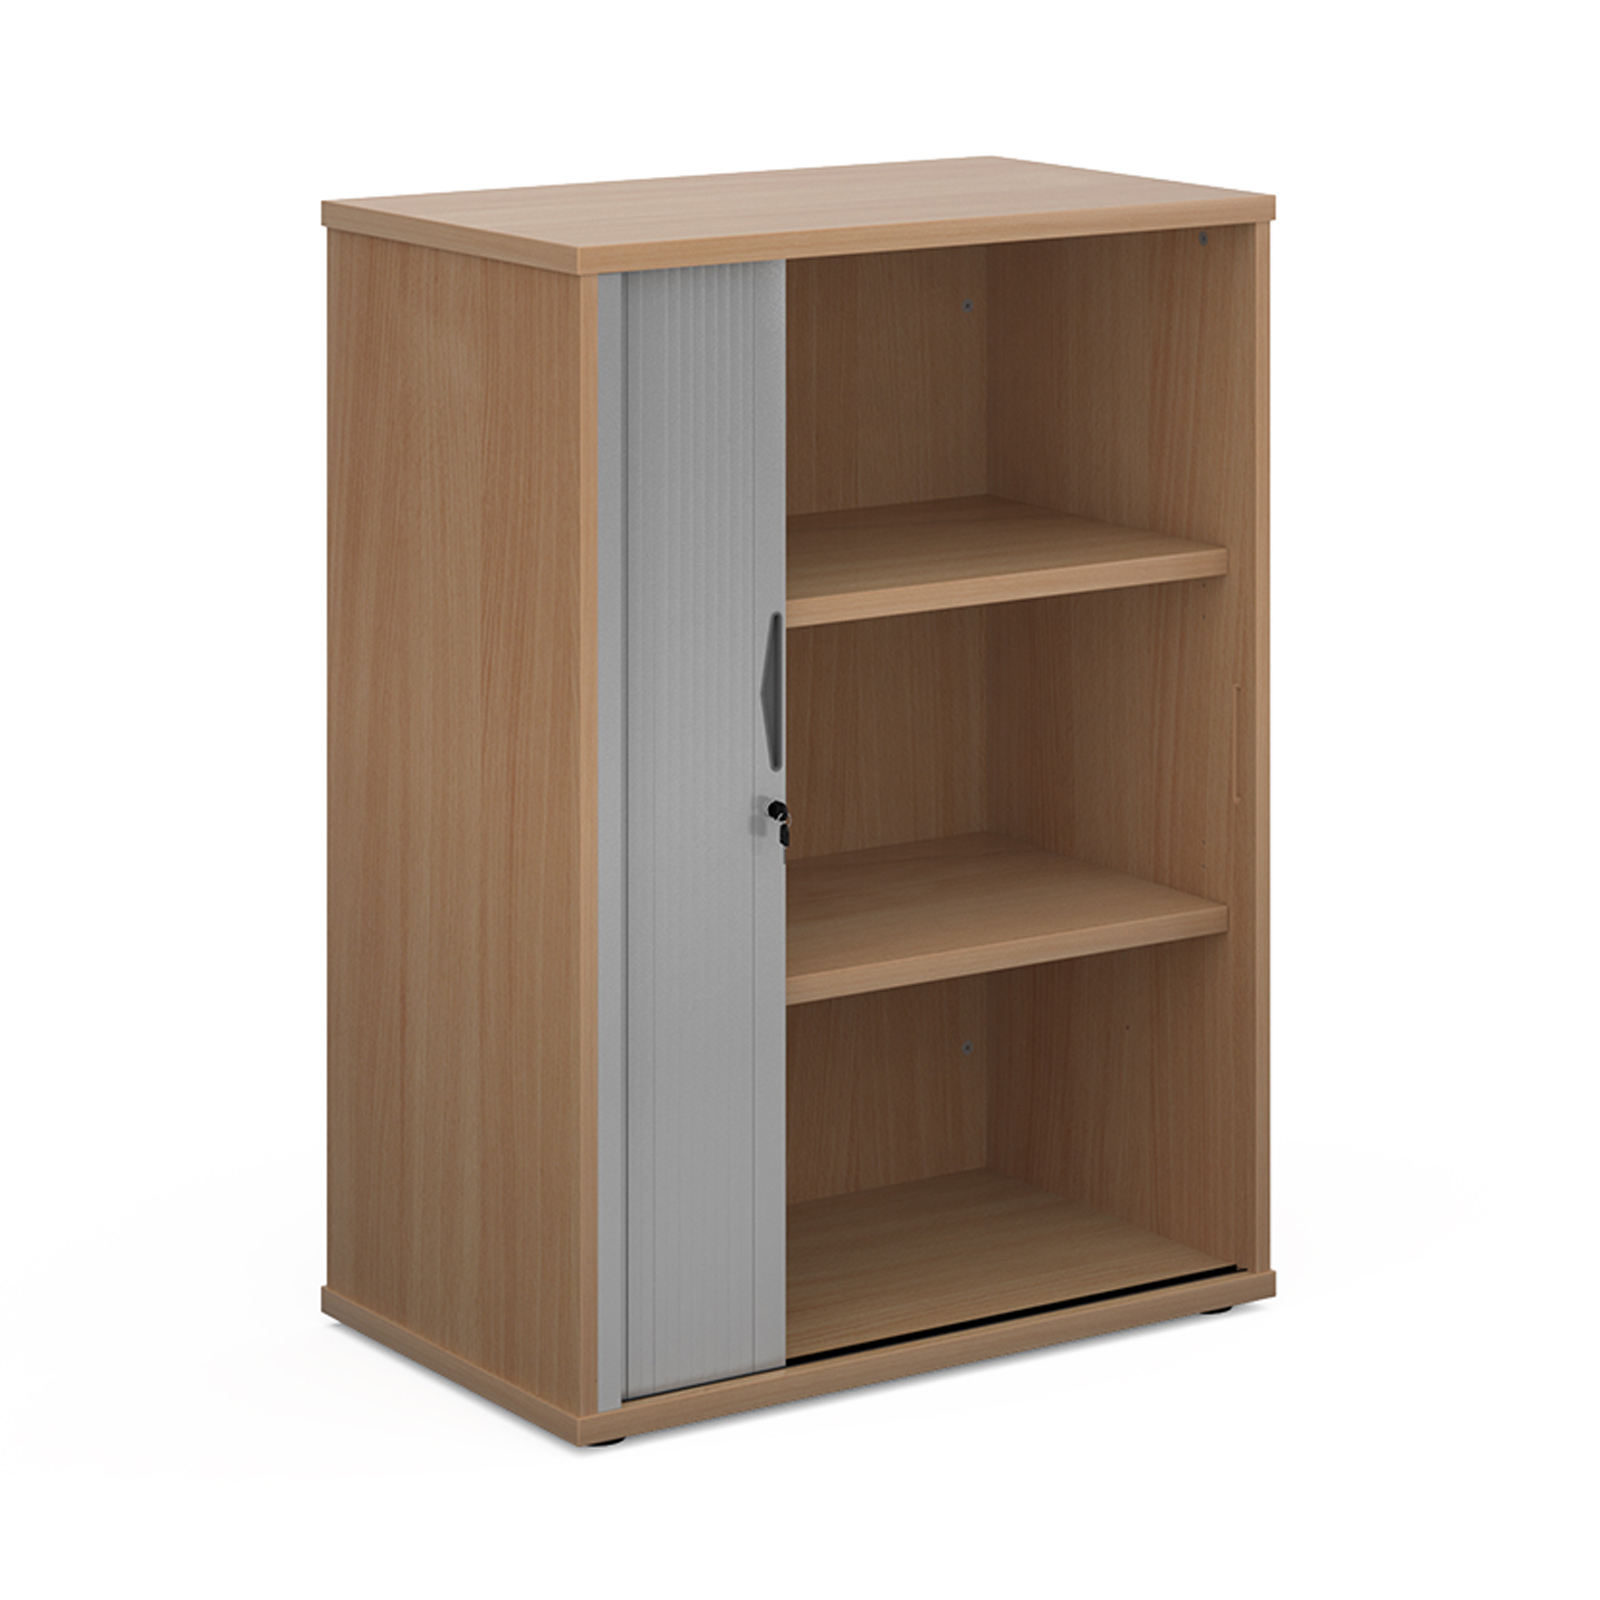 Universal single door tambour cupboard 1090mm high with 2 shelves - beech with silver door